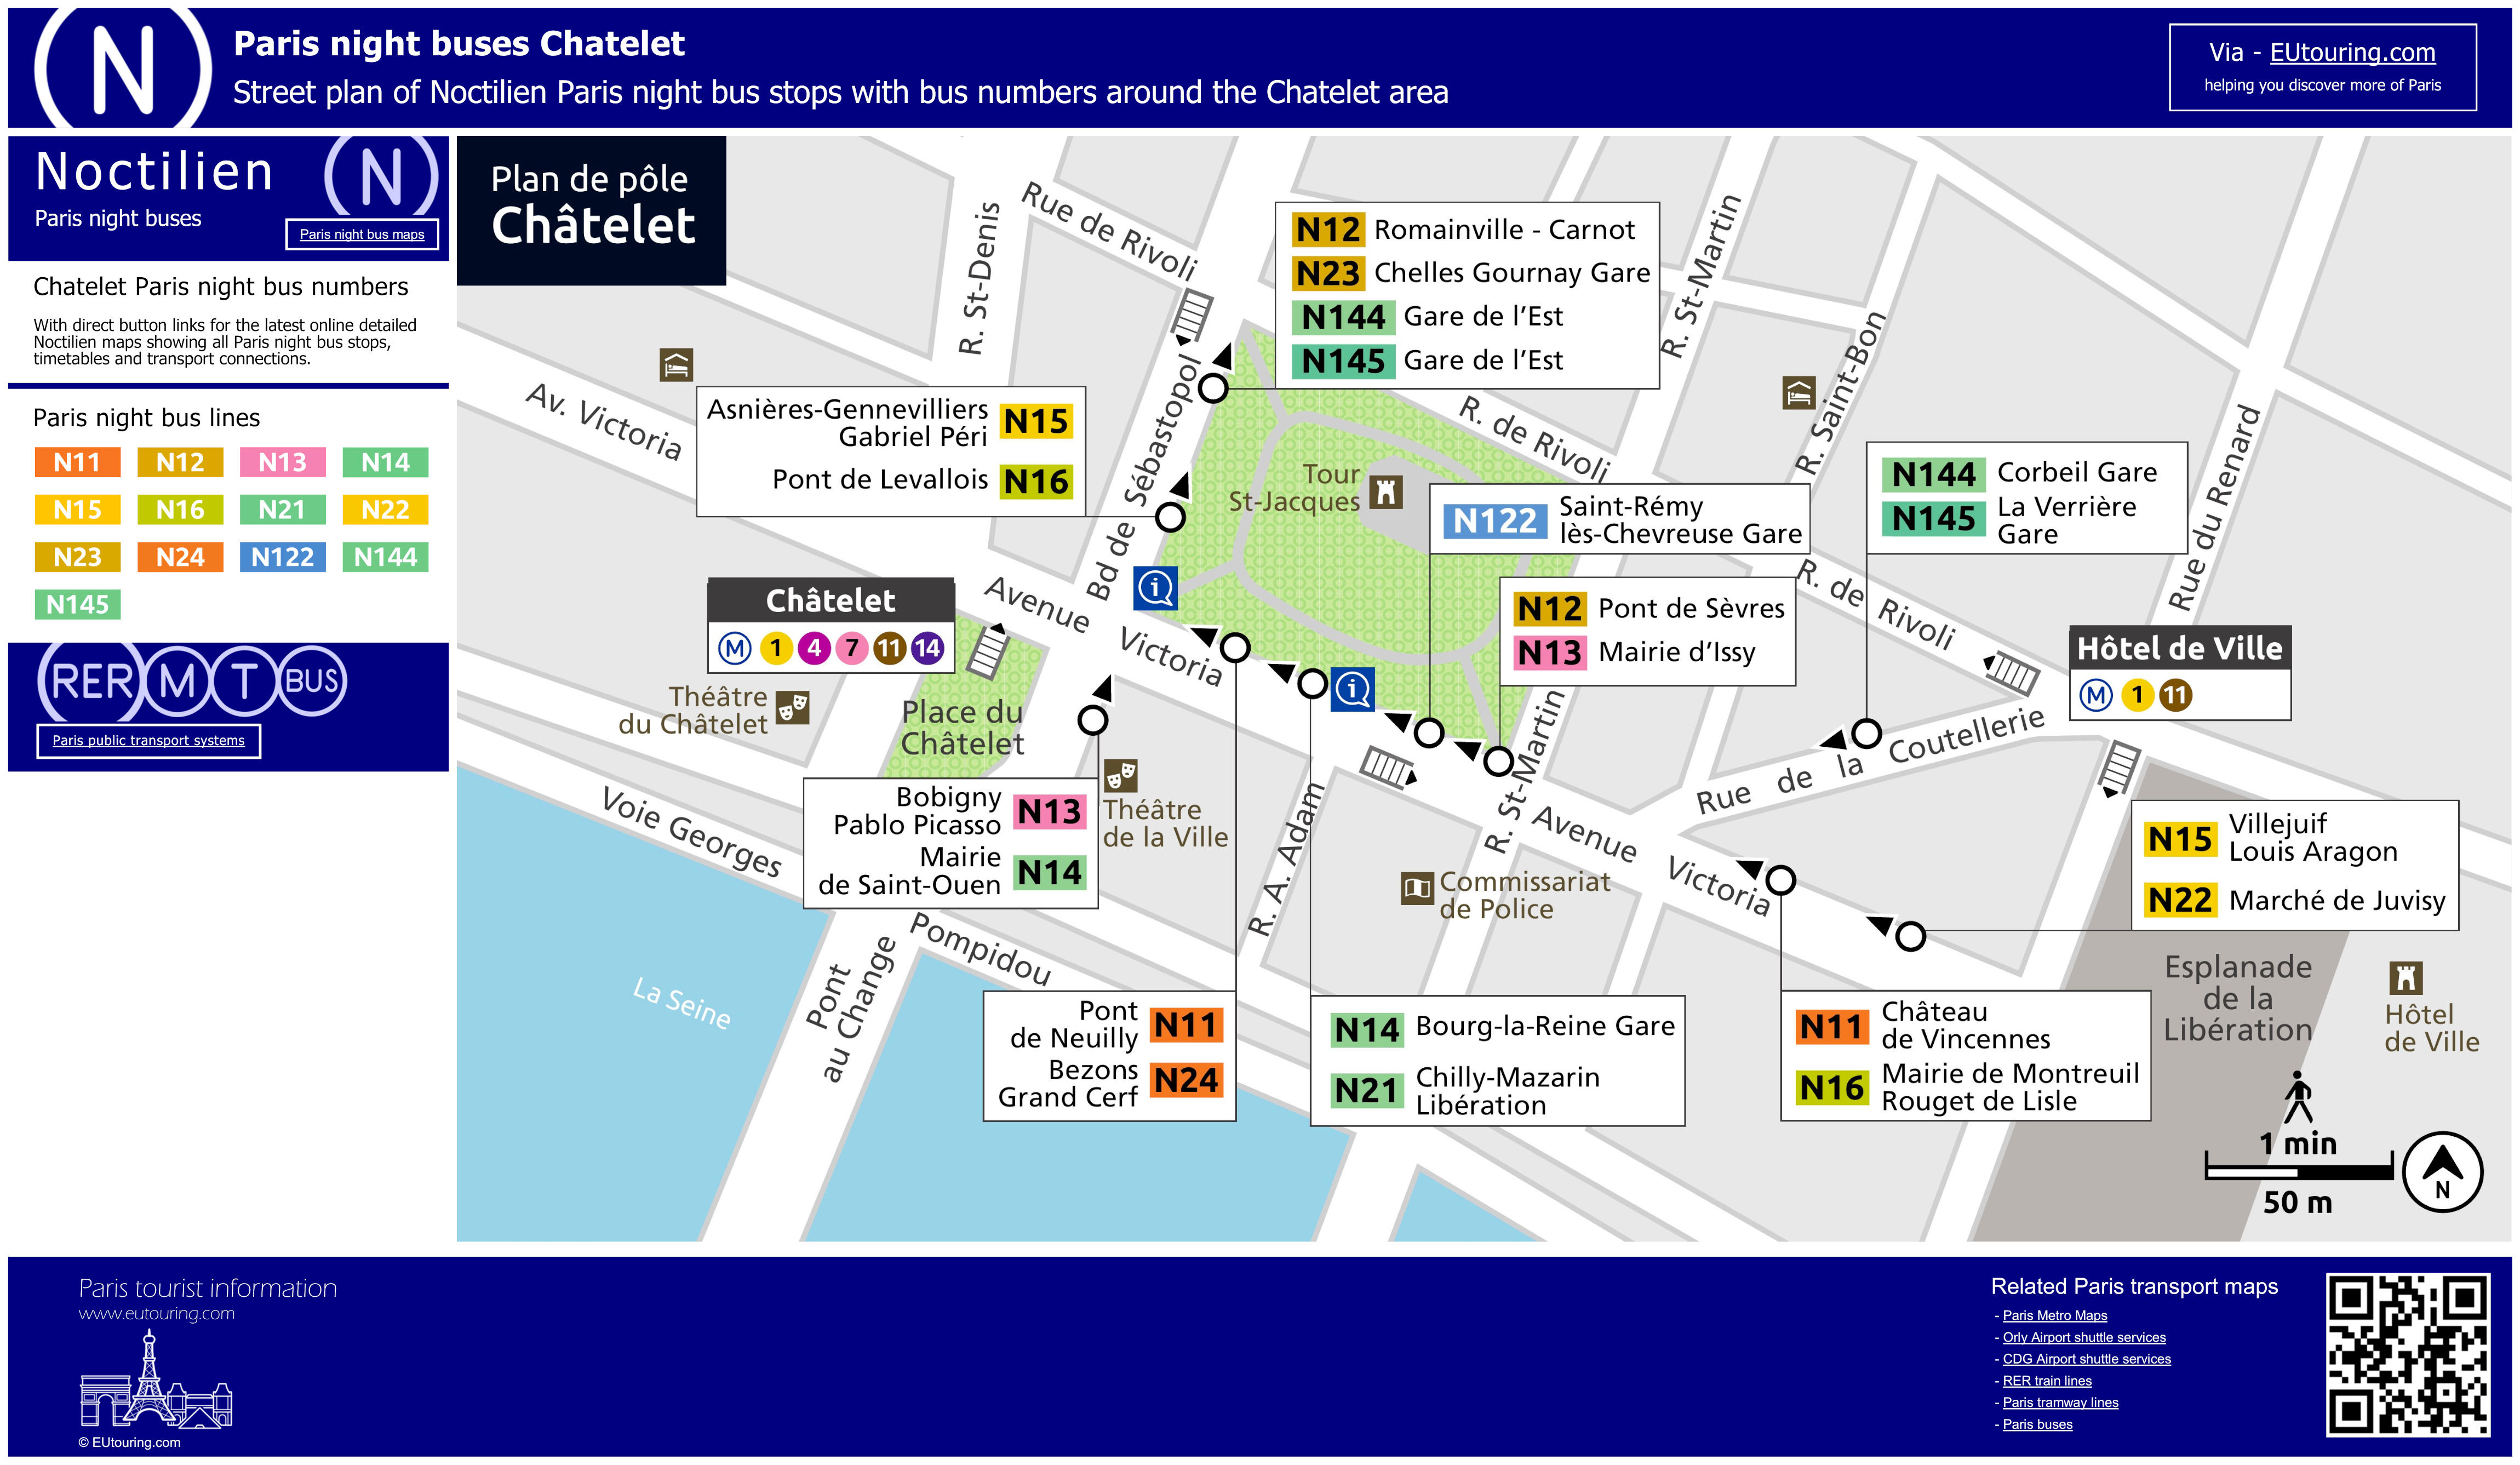 Noctilien bus maps with stops for Paris night buses